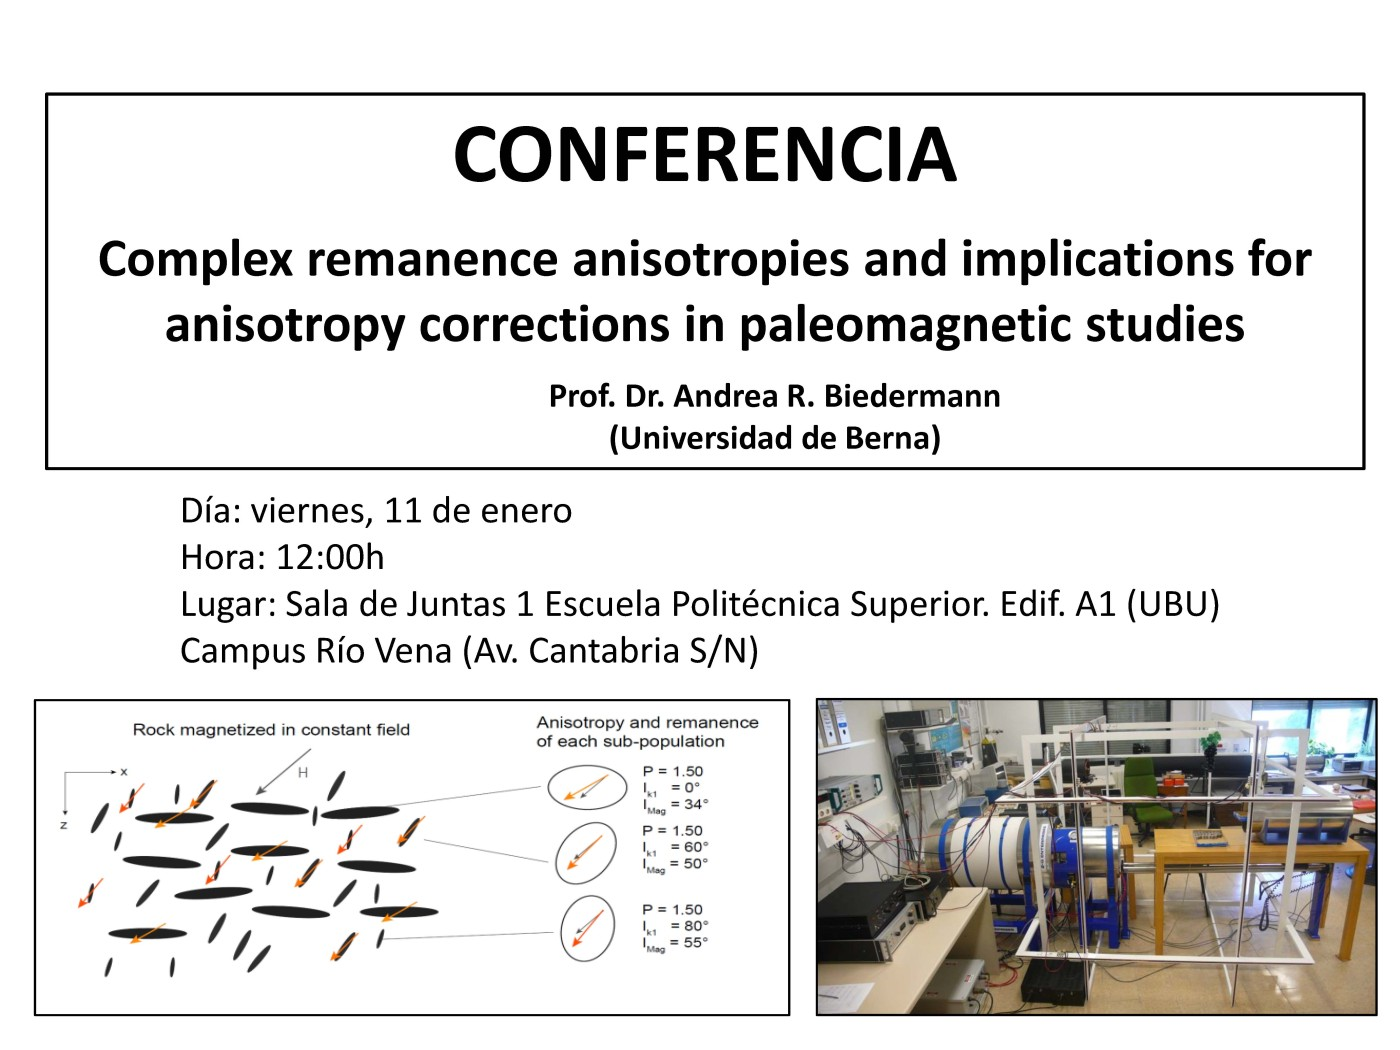 Conferencia. Complex remanence anisotropies and implications for anisotropy corrections in paleomagnetic studies